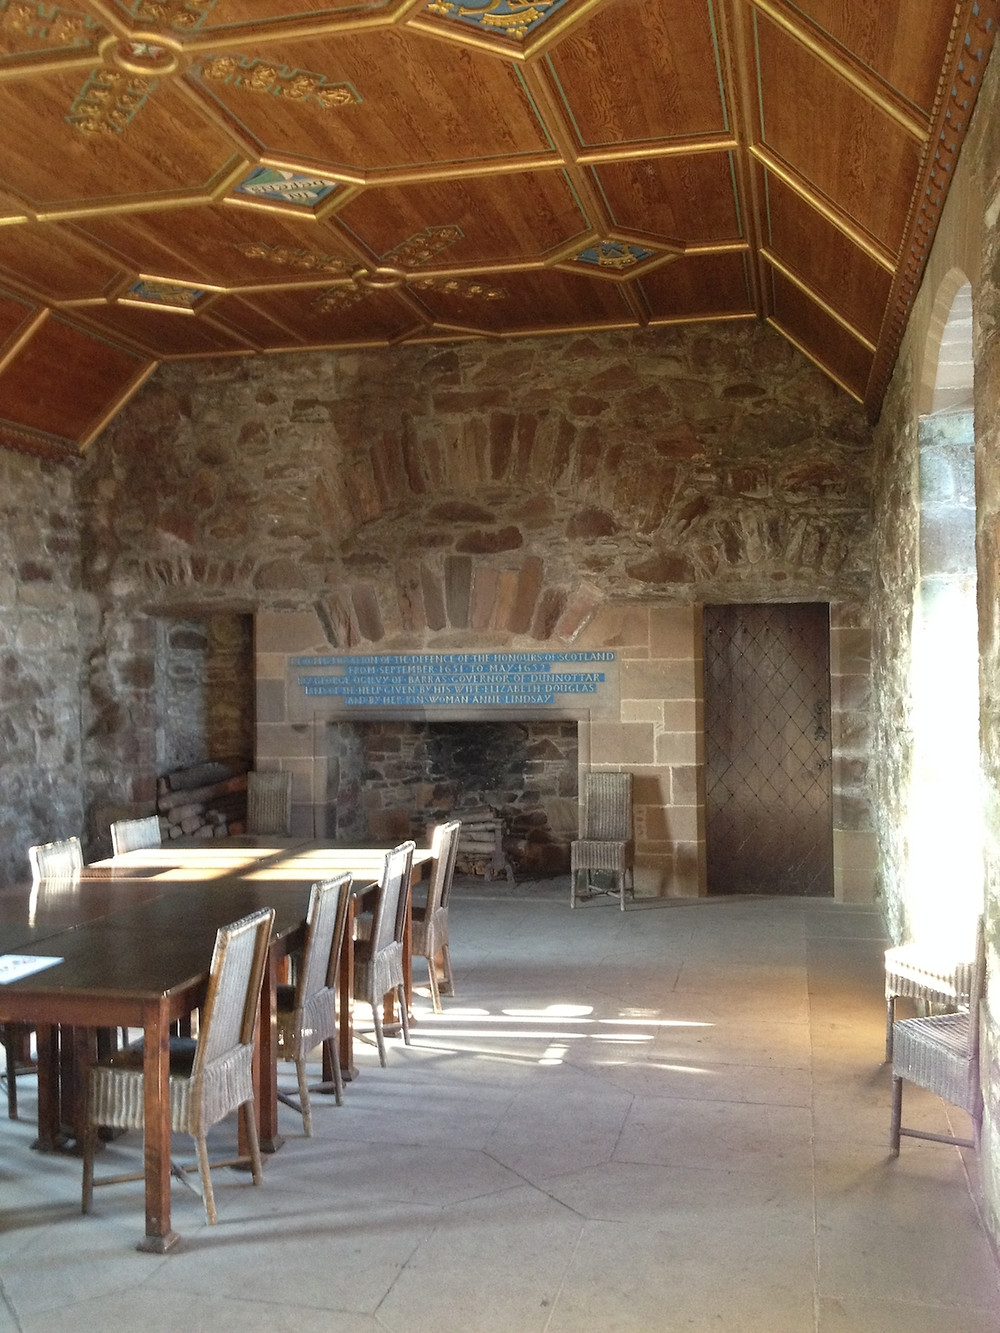 Within the Dunnottar Castle Palace is the Drawing Room with its carved oak ceiling.